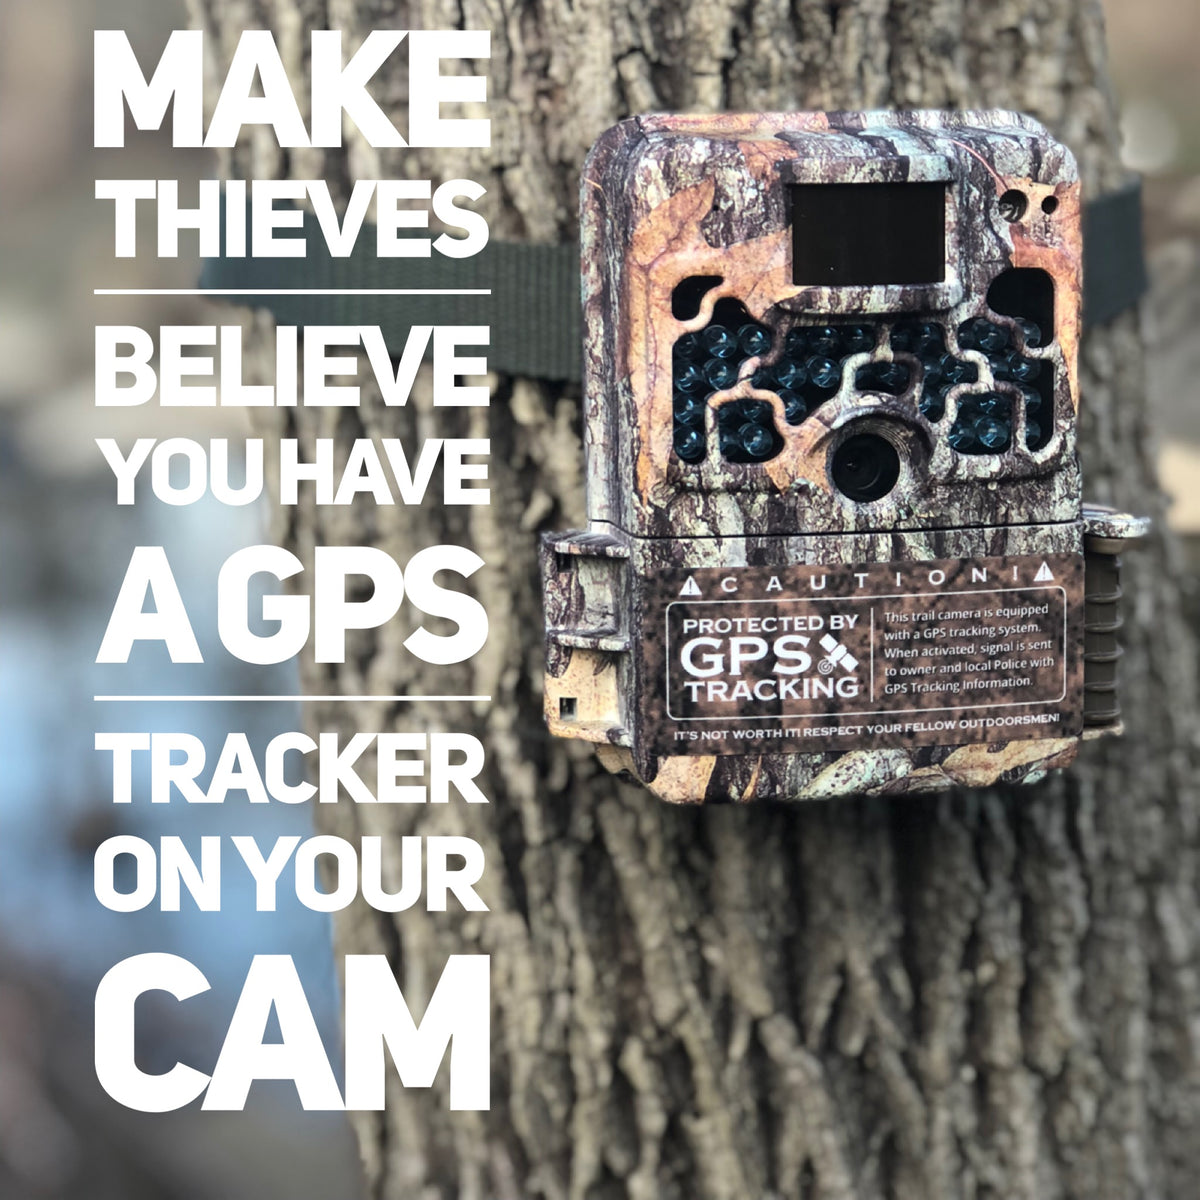 Trail camera theft prevention